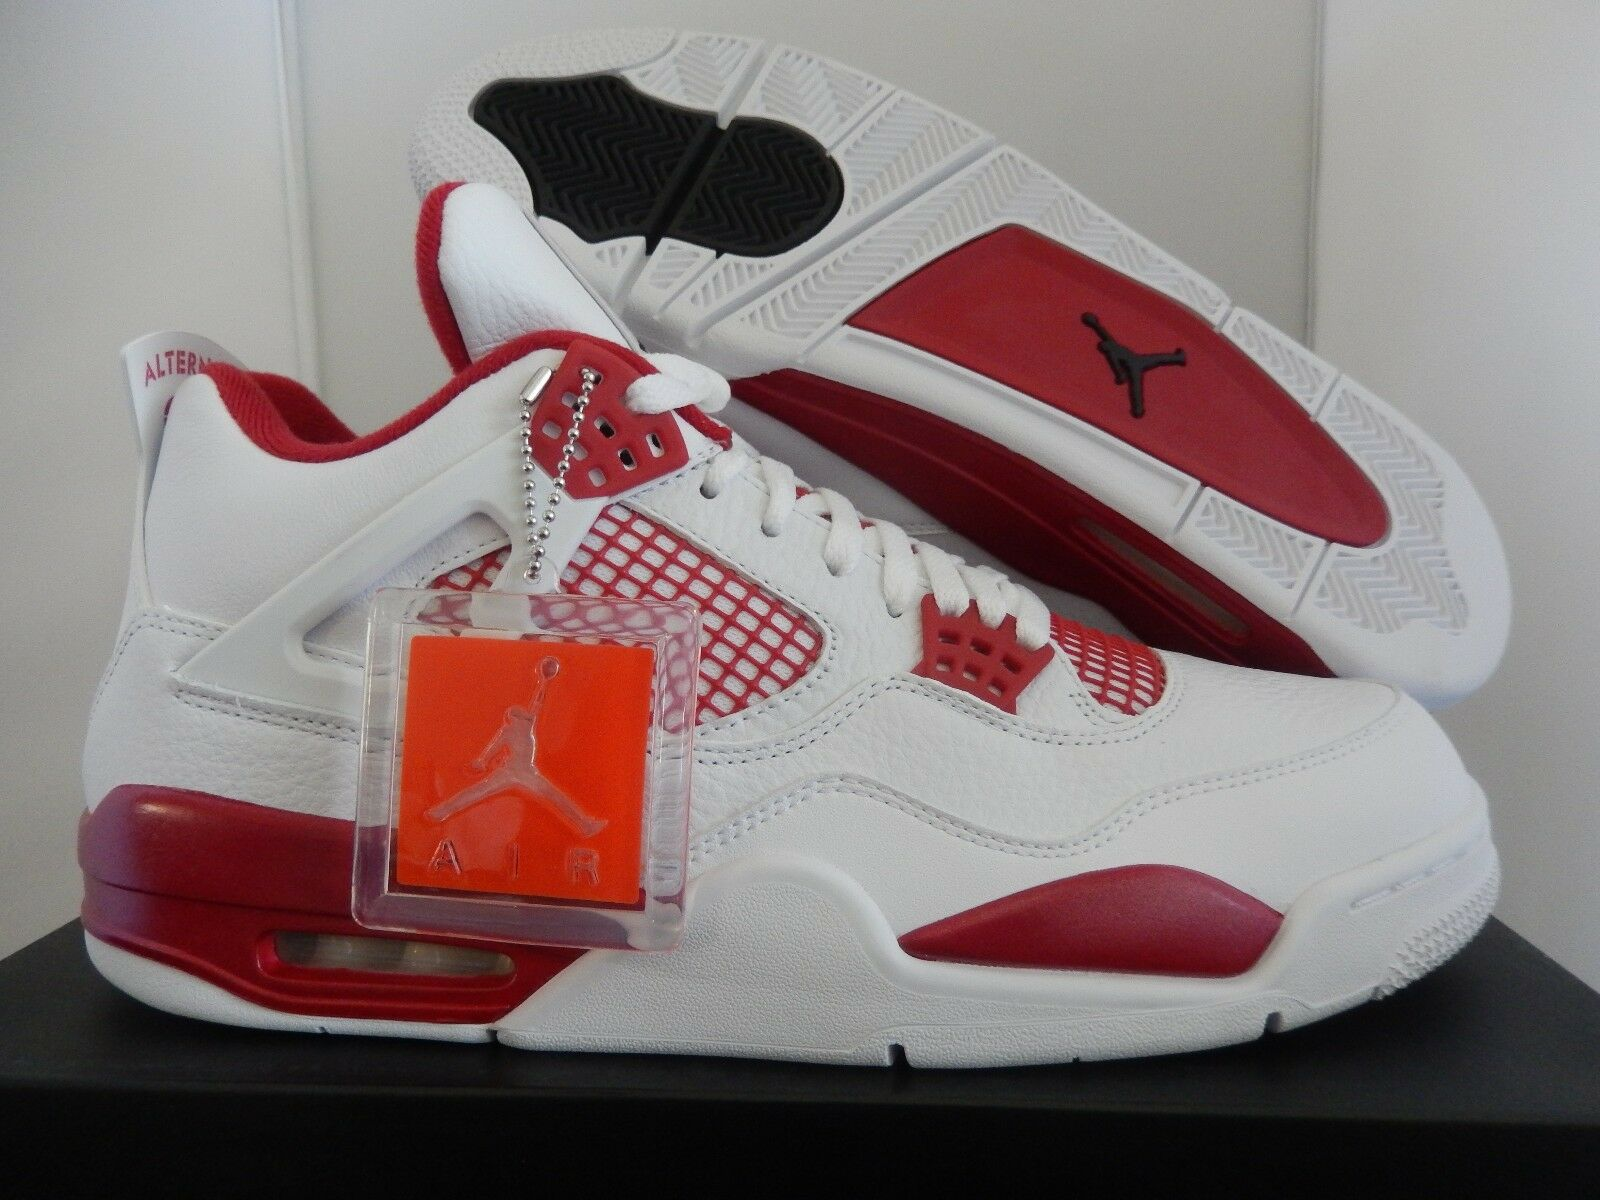 NIKE AIR JORDAN 4 RETRO WHITE-BLACK-GYM RED  ALTERNATE  SZ 14